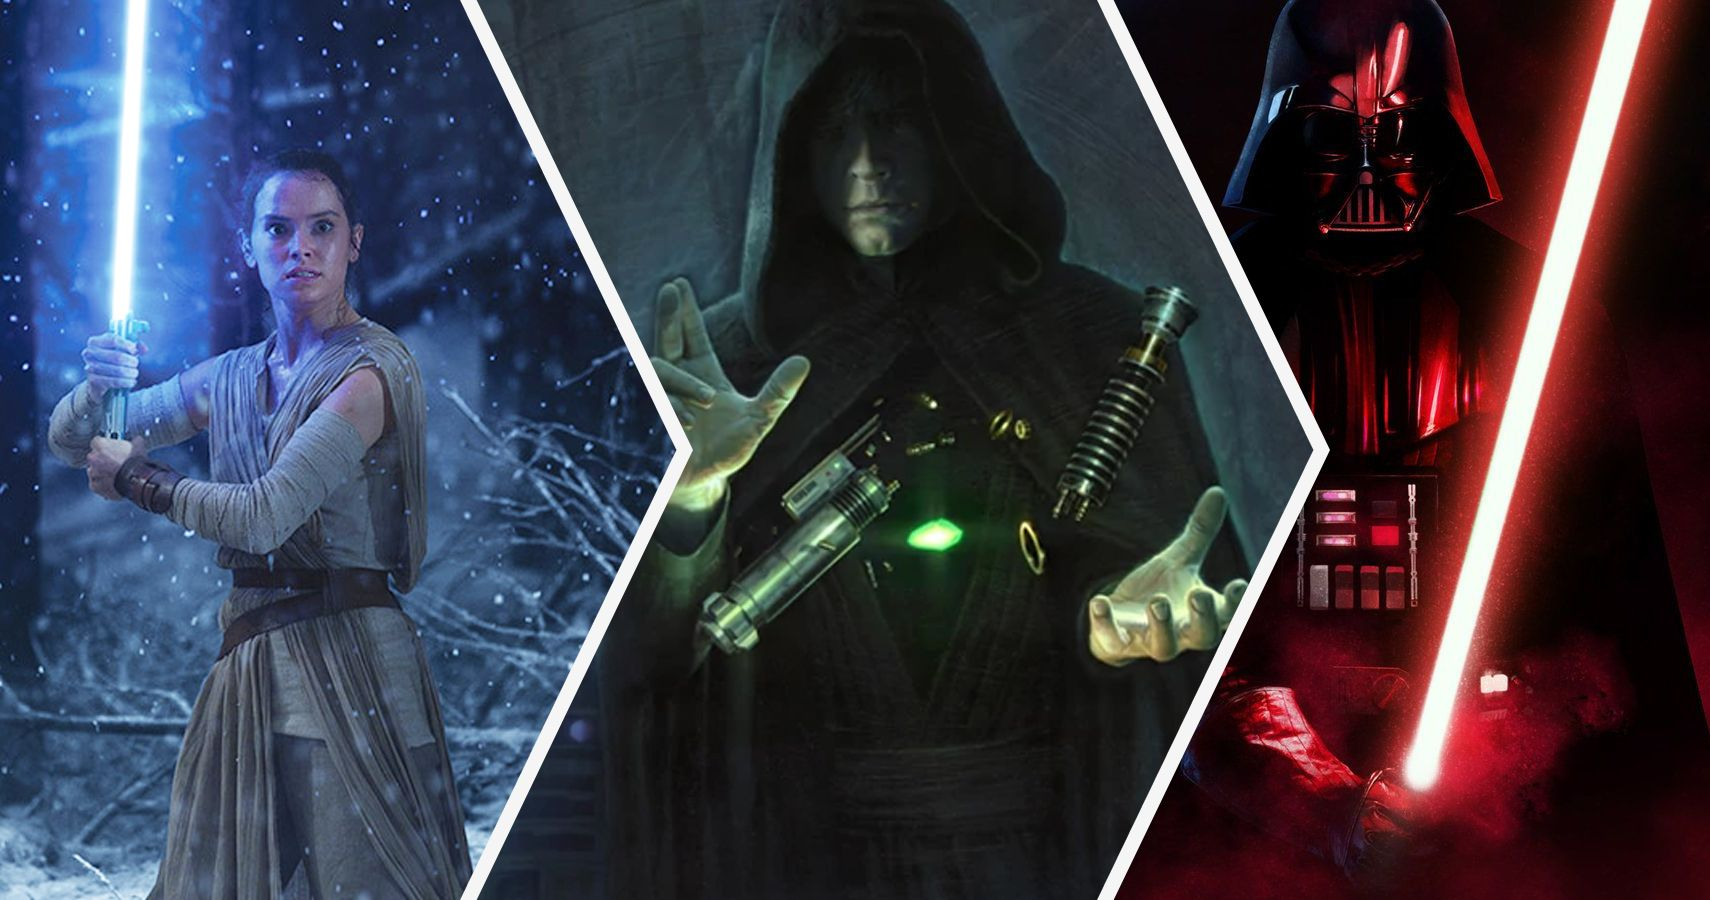 Darth Vectivus Lightsaber: Star Wars: 15 Things Only True Fans Know About Luke's